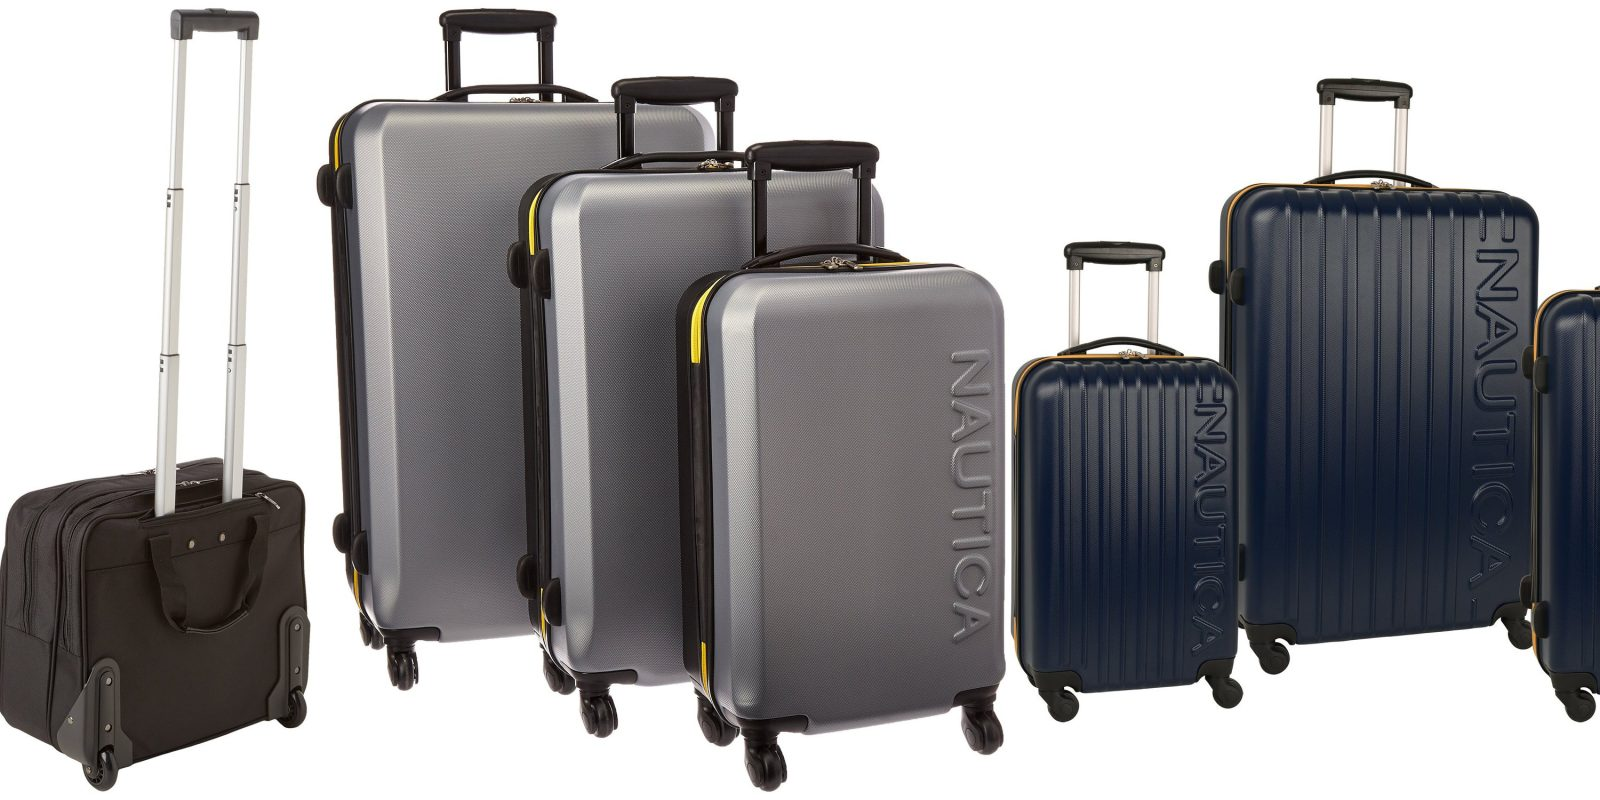 d4a9e9f2d5b2 Amazon offers up to 60% off luggage travel gear  Kenneth Cole Computer Case   49